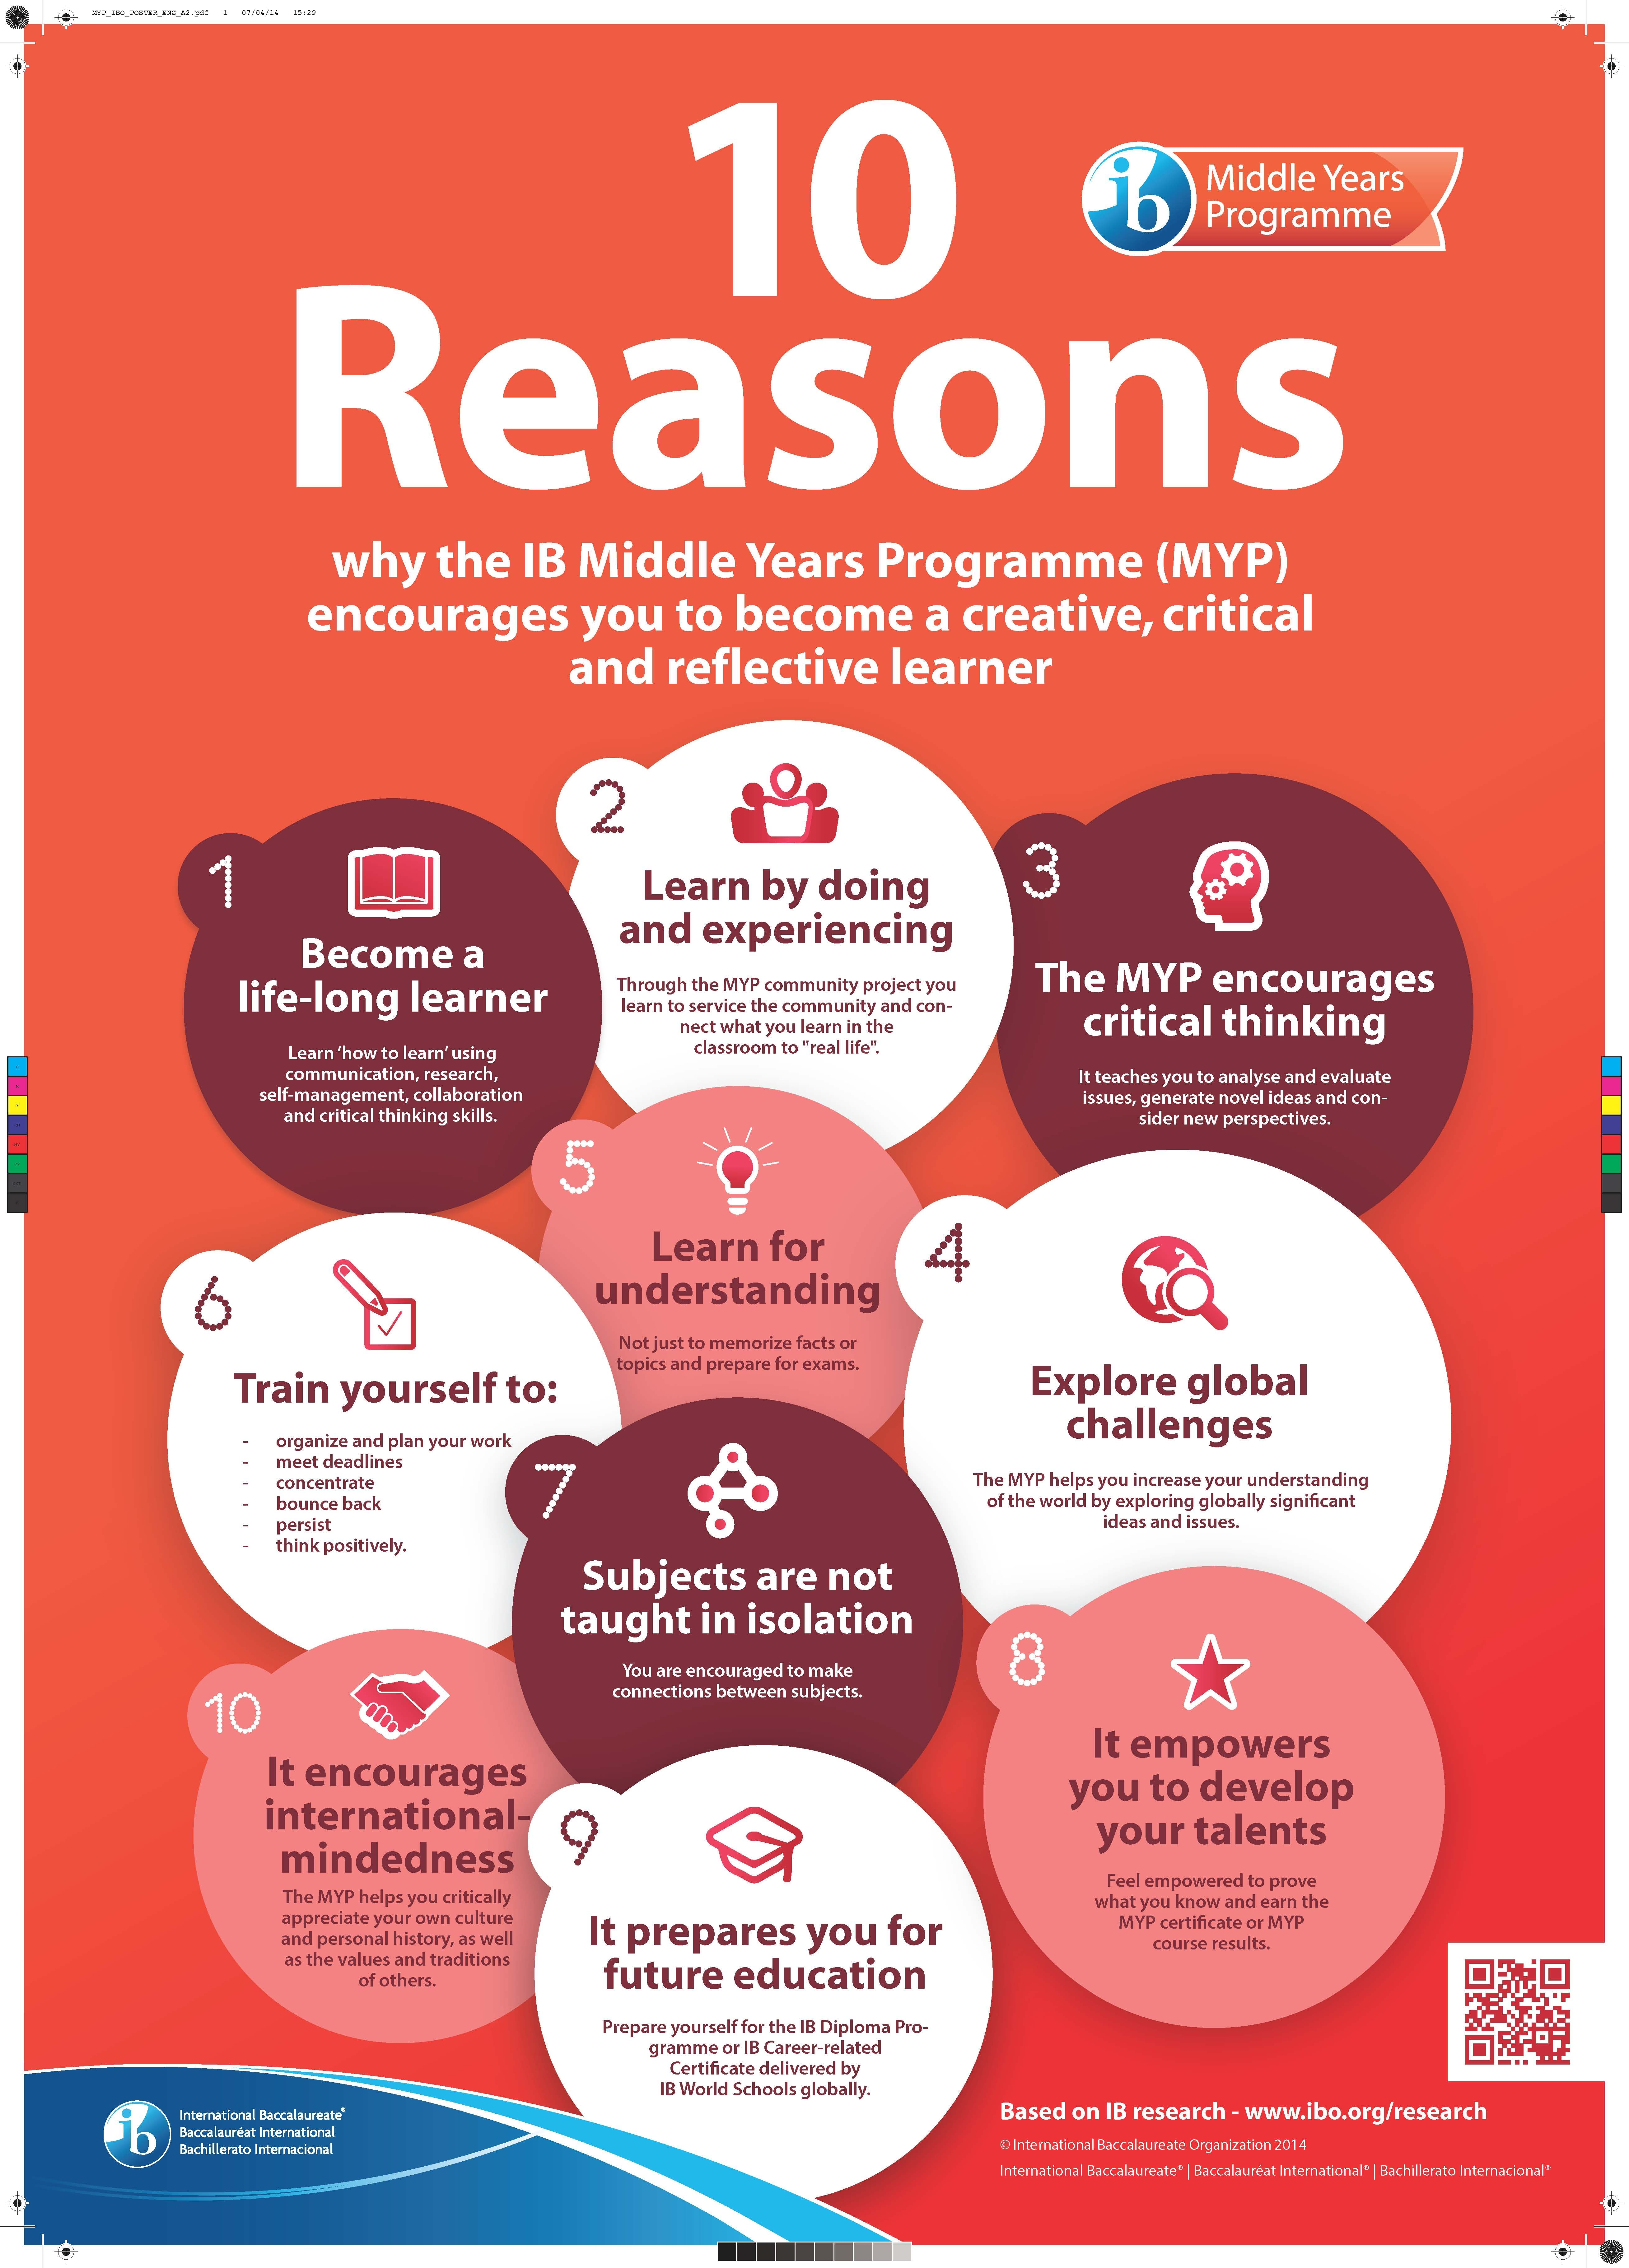 10 Reasons how the MYP encourages you to be a creative, critical and  reflective learner.